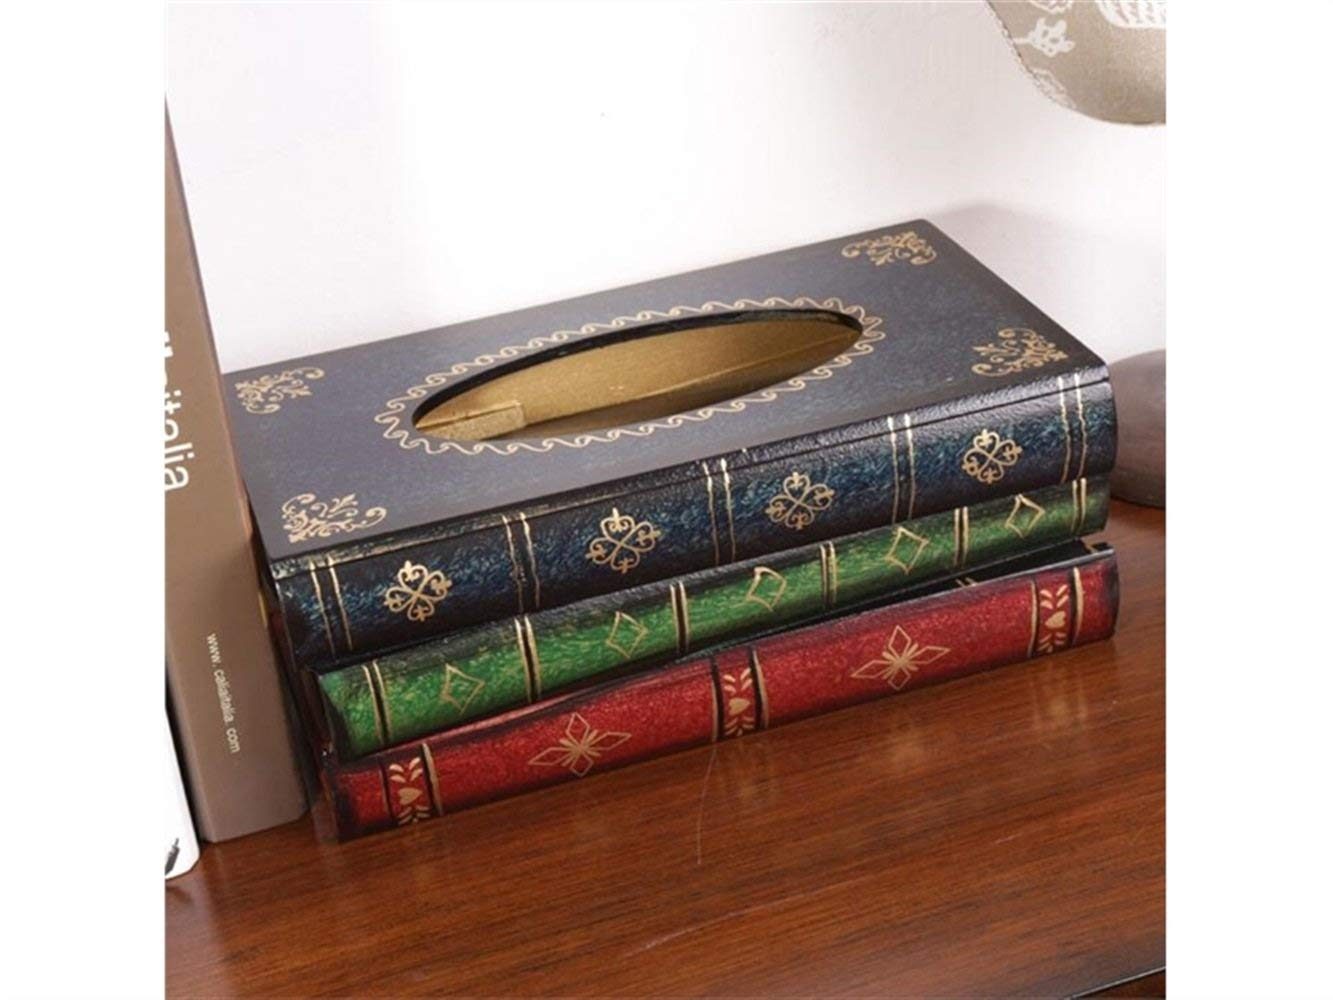 Yuchoi Perfectly Shaped Retro Wooden Book Shaped Tissue Box Antique Book Tissue Box Decoration